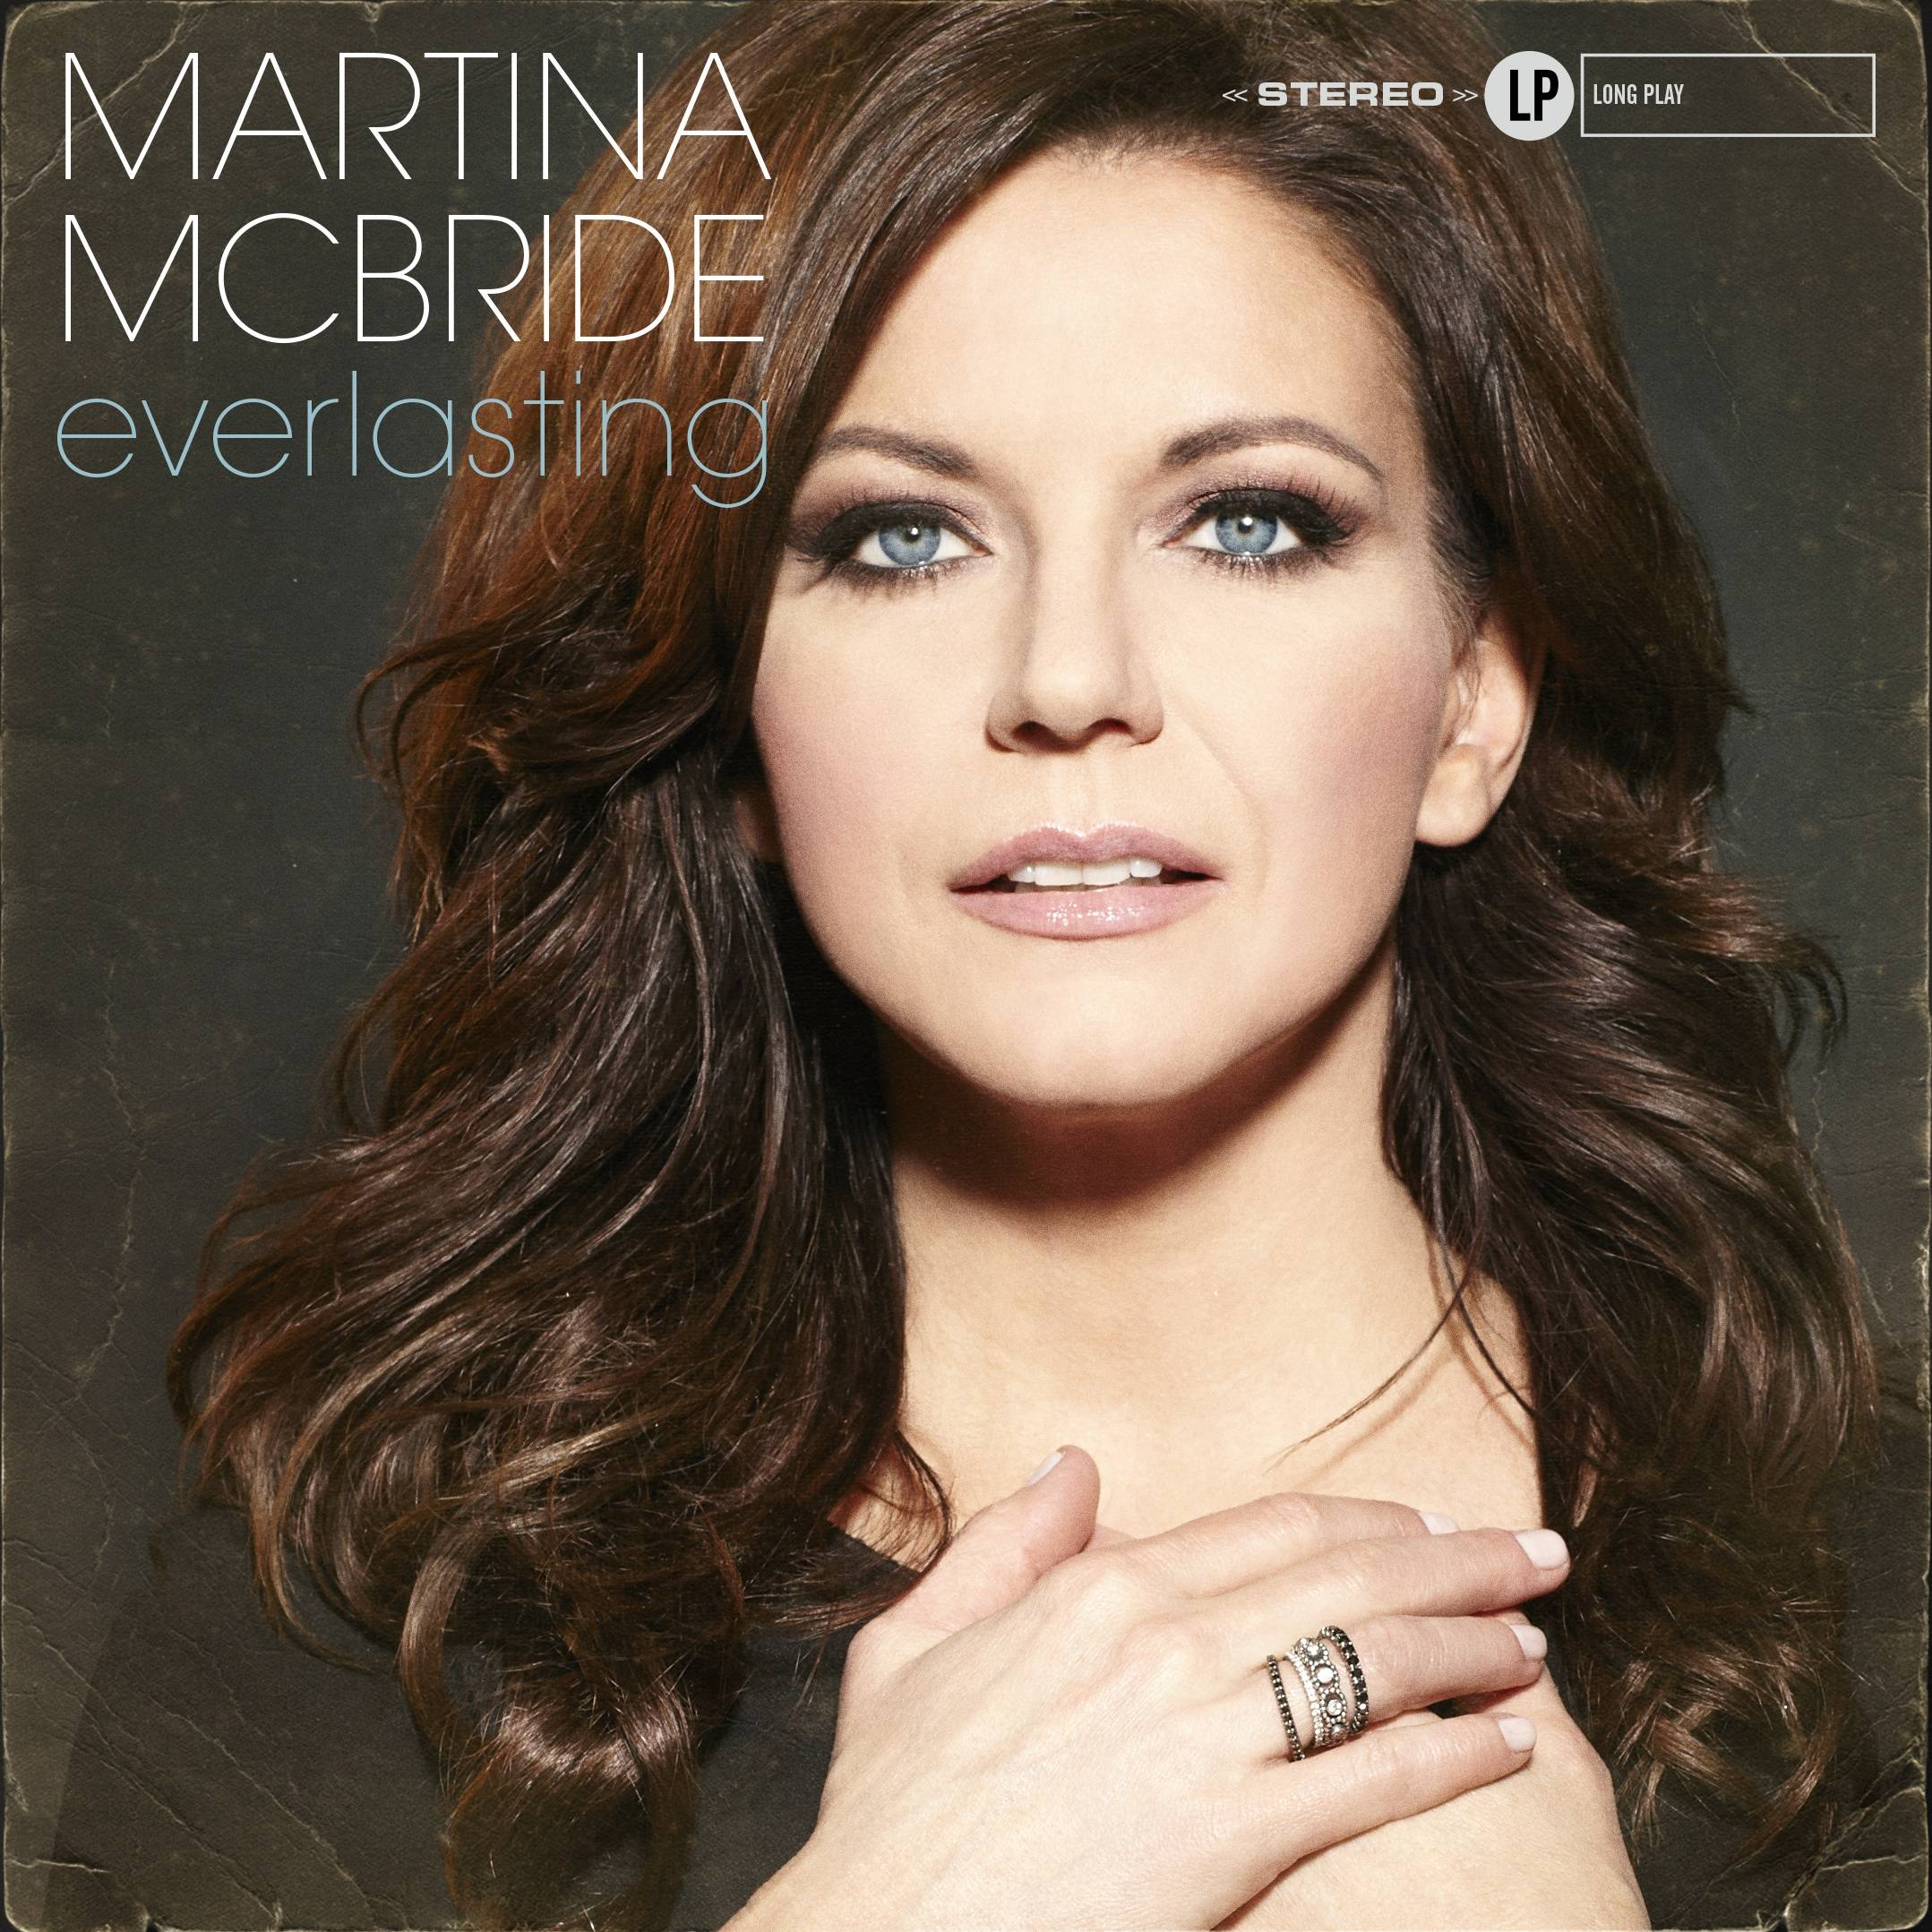 "Her new album, ""Everlasting,"" Martina McBride begs comparison with such giants as Aretha Franklin and Sam Cooke by taking on their most potent performances and material."